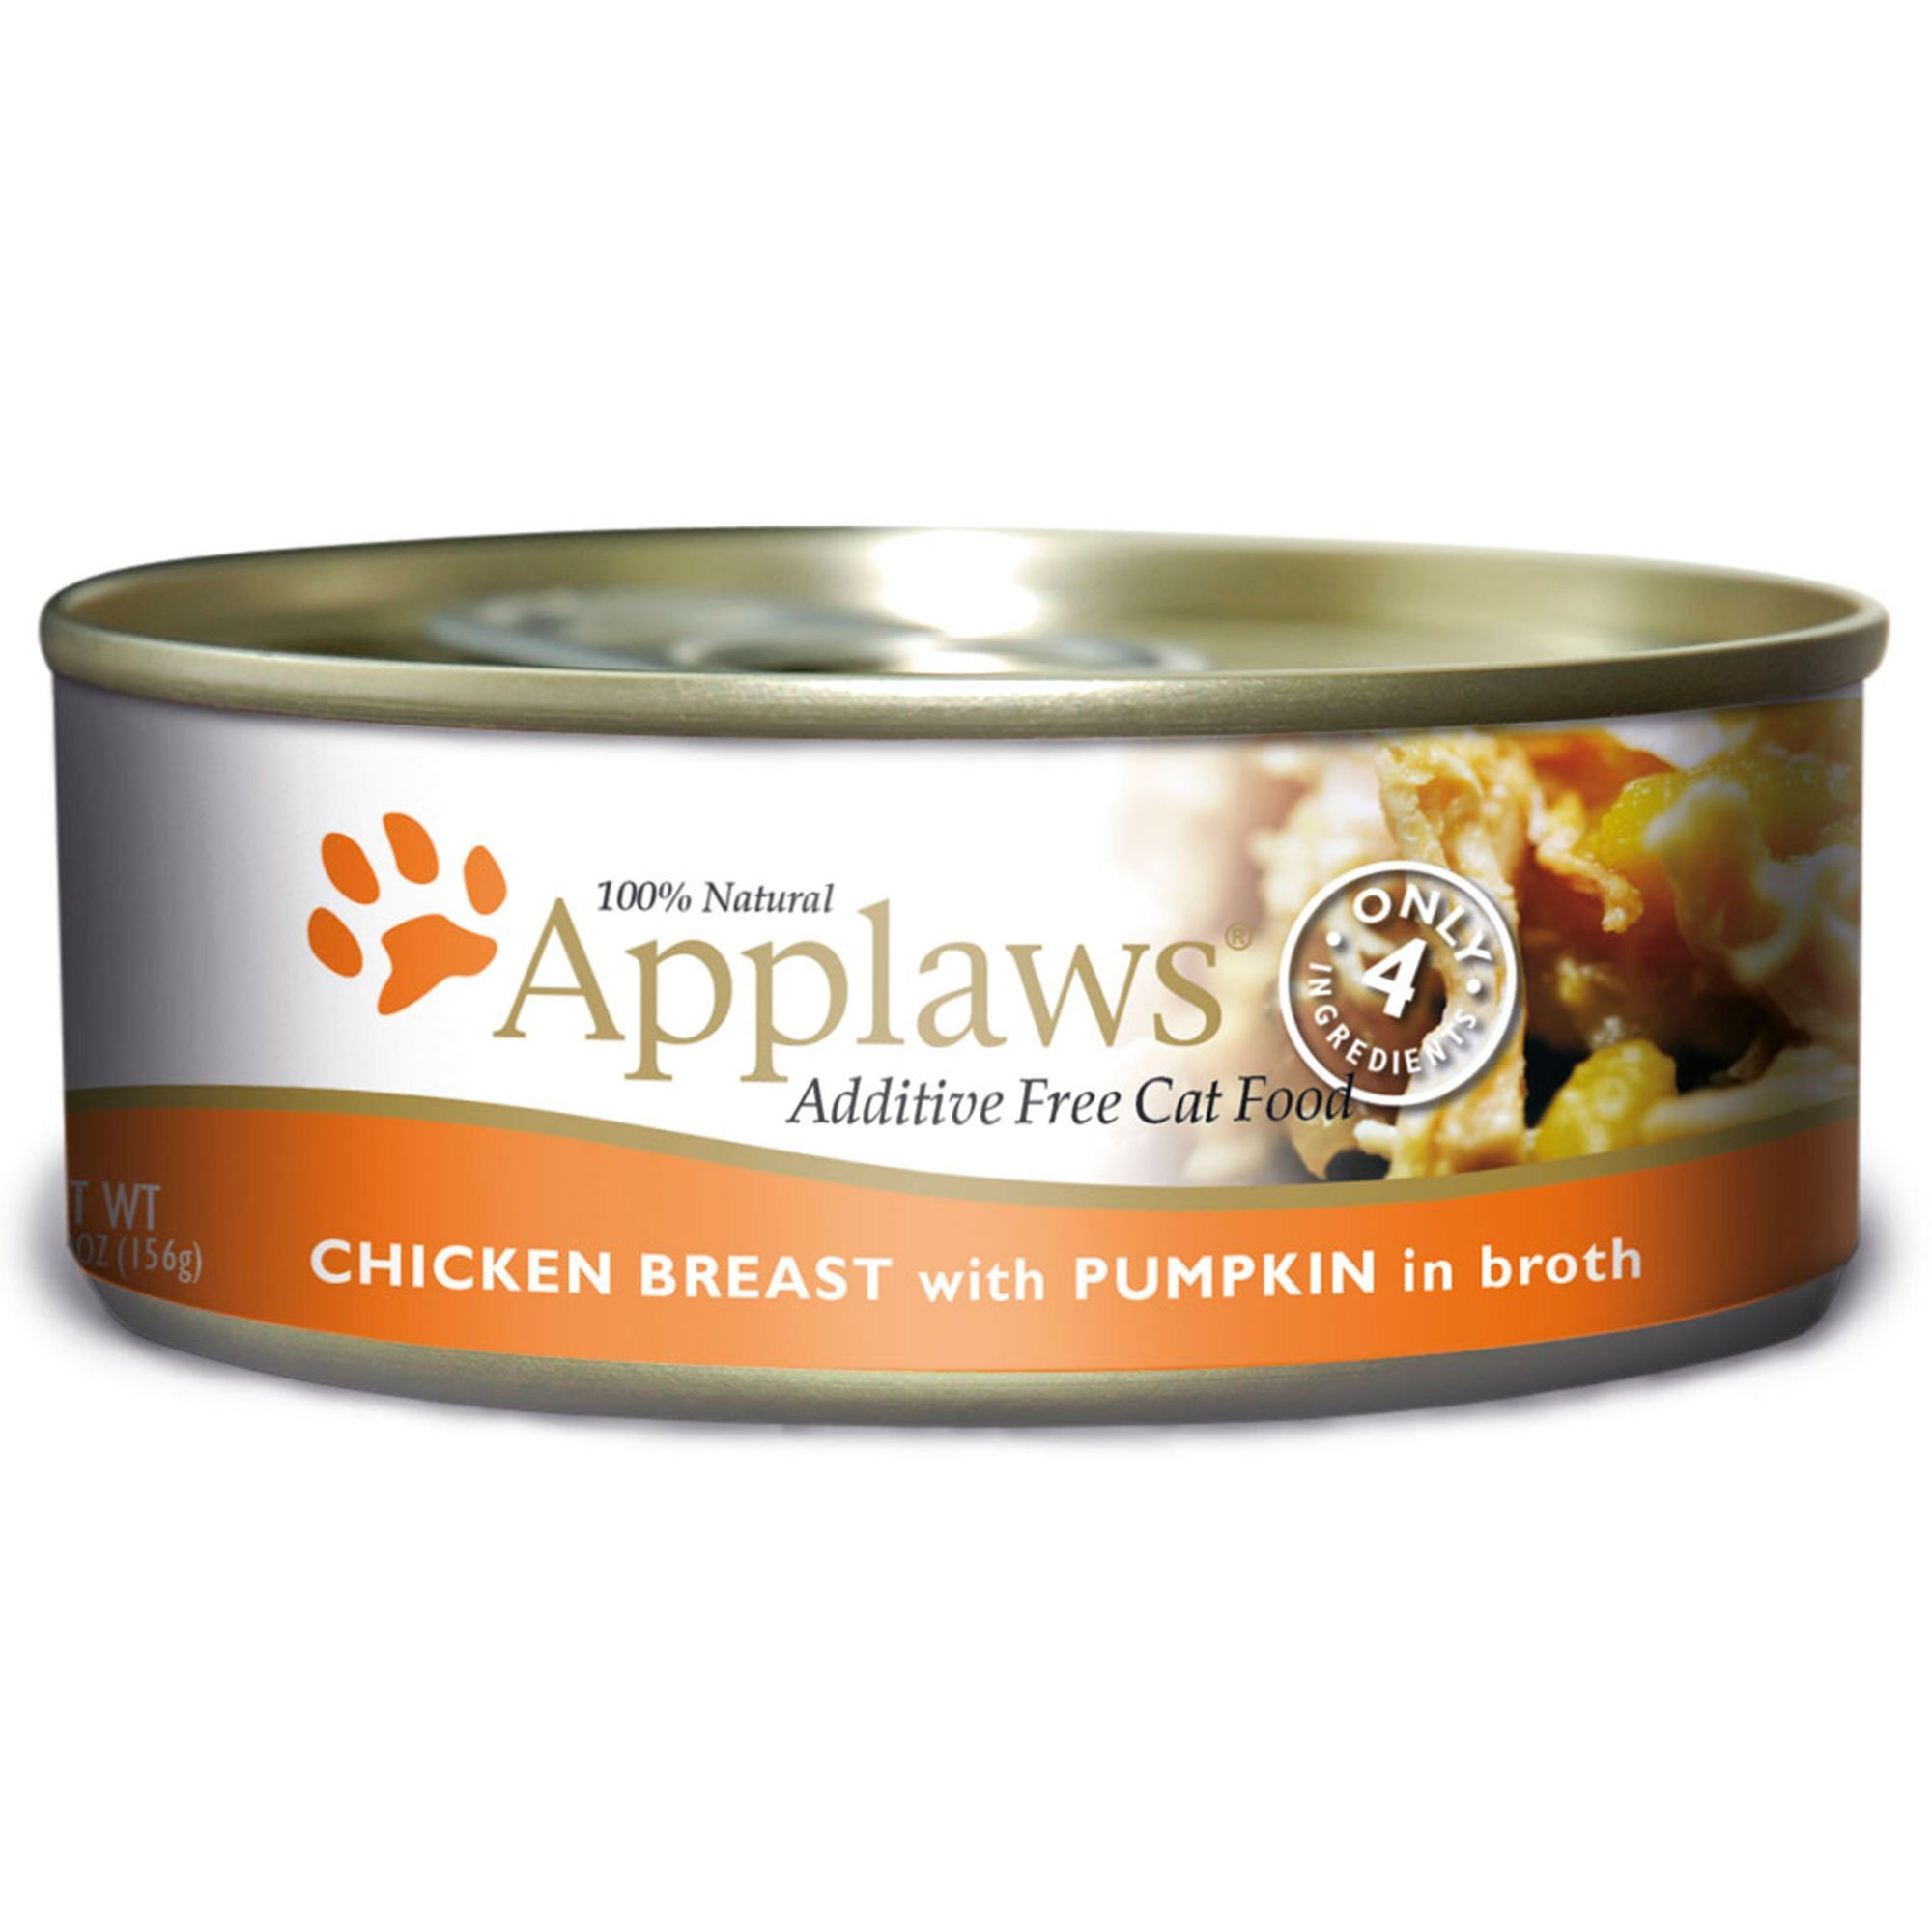 Applaws Chicken Breast And Pumpkin, 24 - 5.5-Ounce Can by Applaws